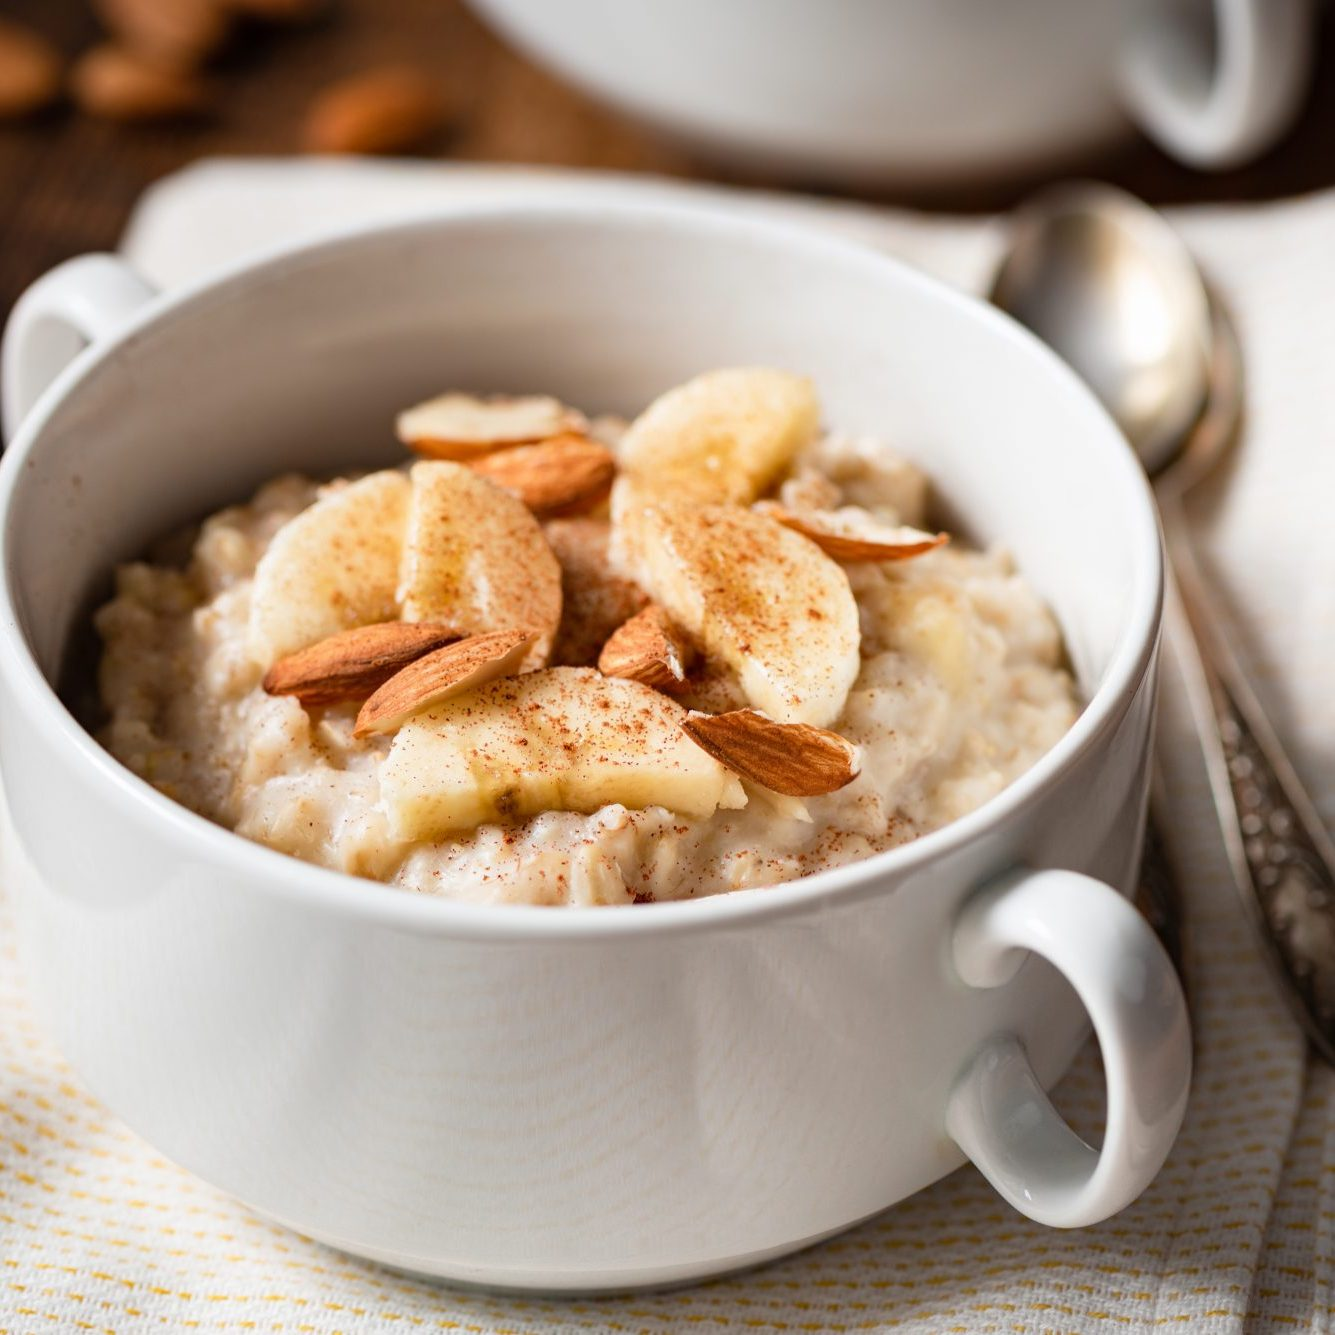 high protein Oatmeal porridge with banana, cinnamon and almonds